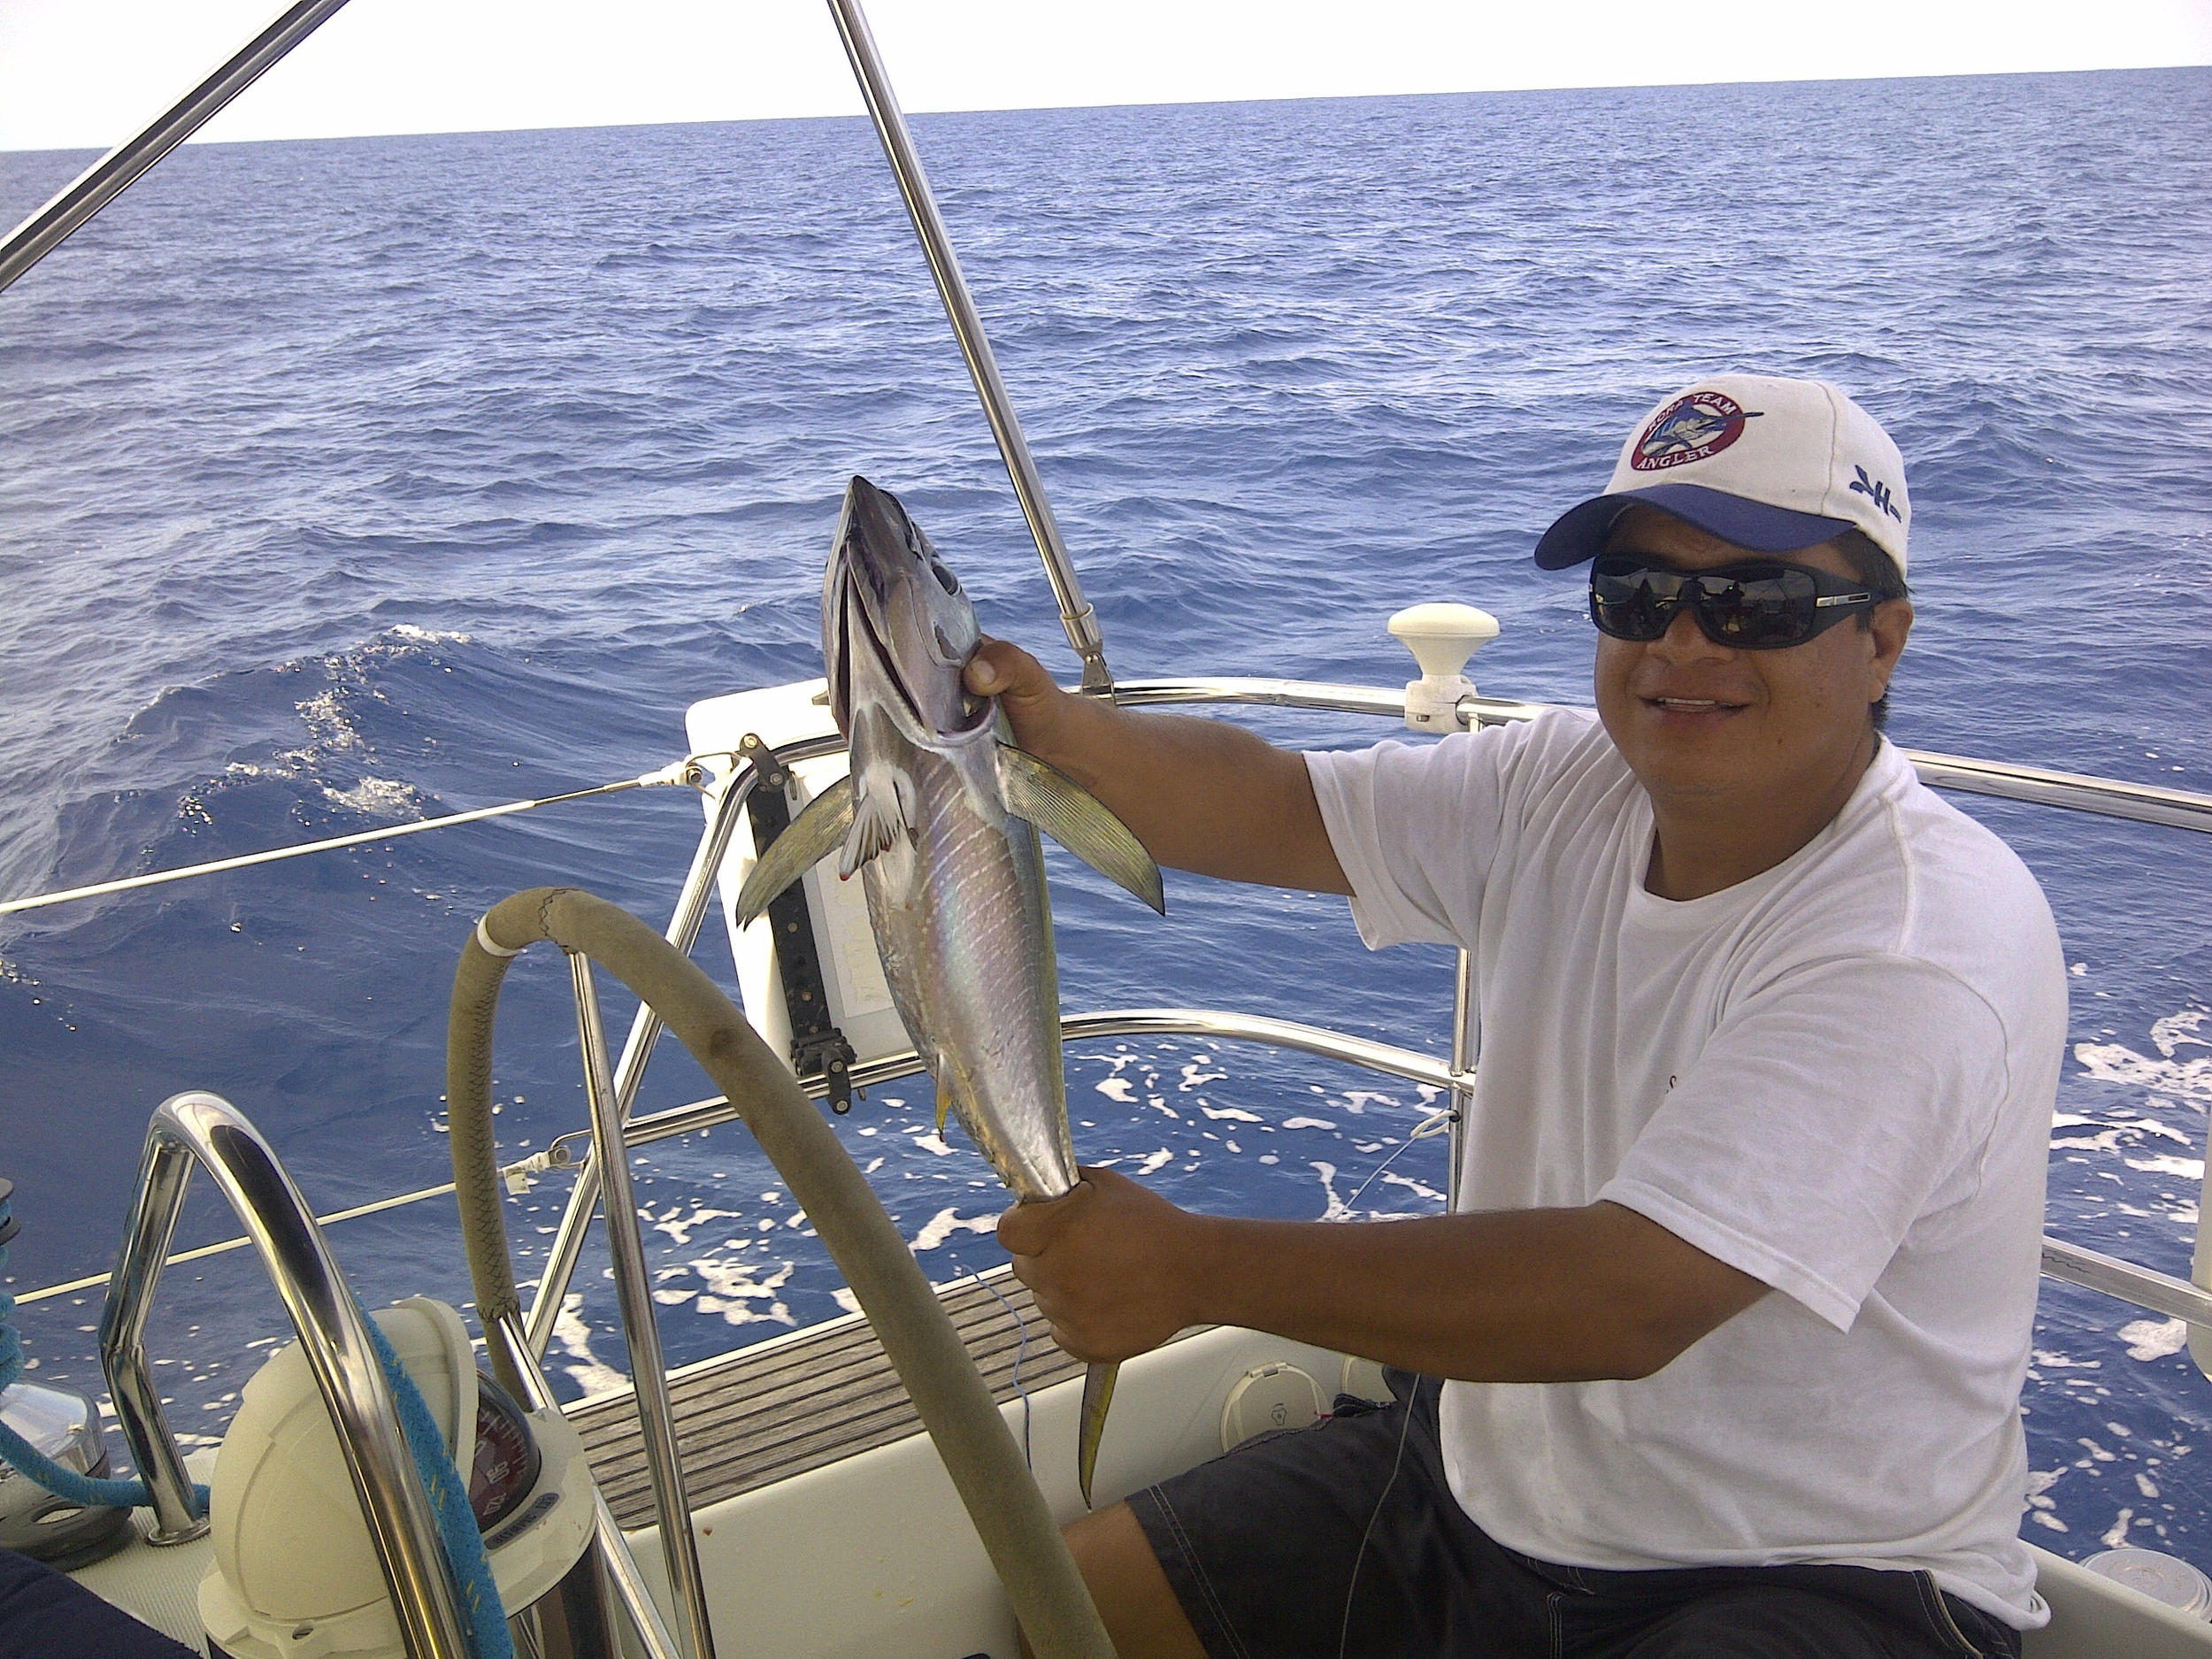 Captain Sergio with the days catch on his way to Ensenada